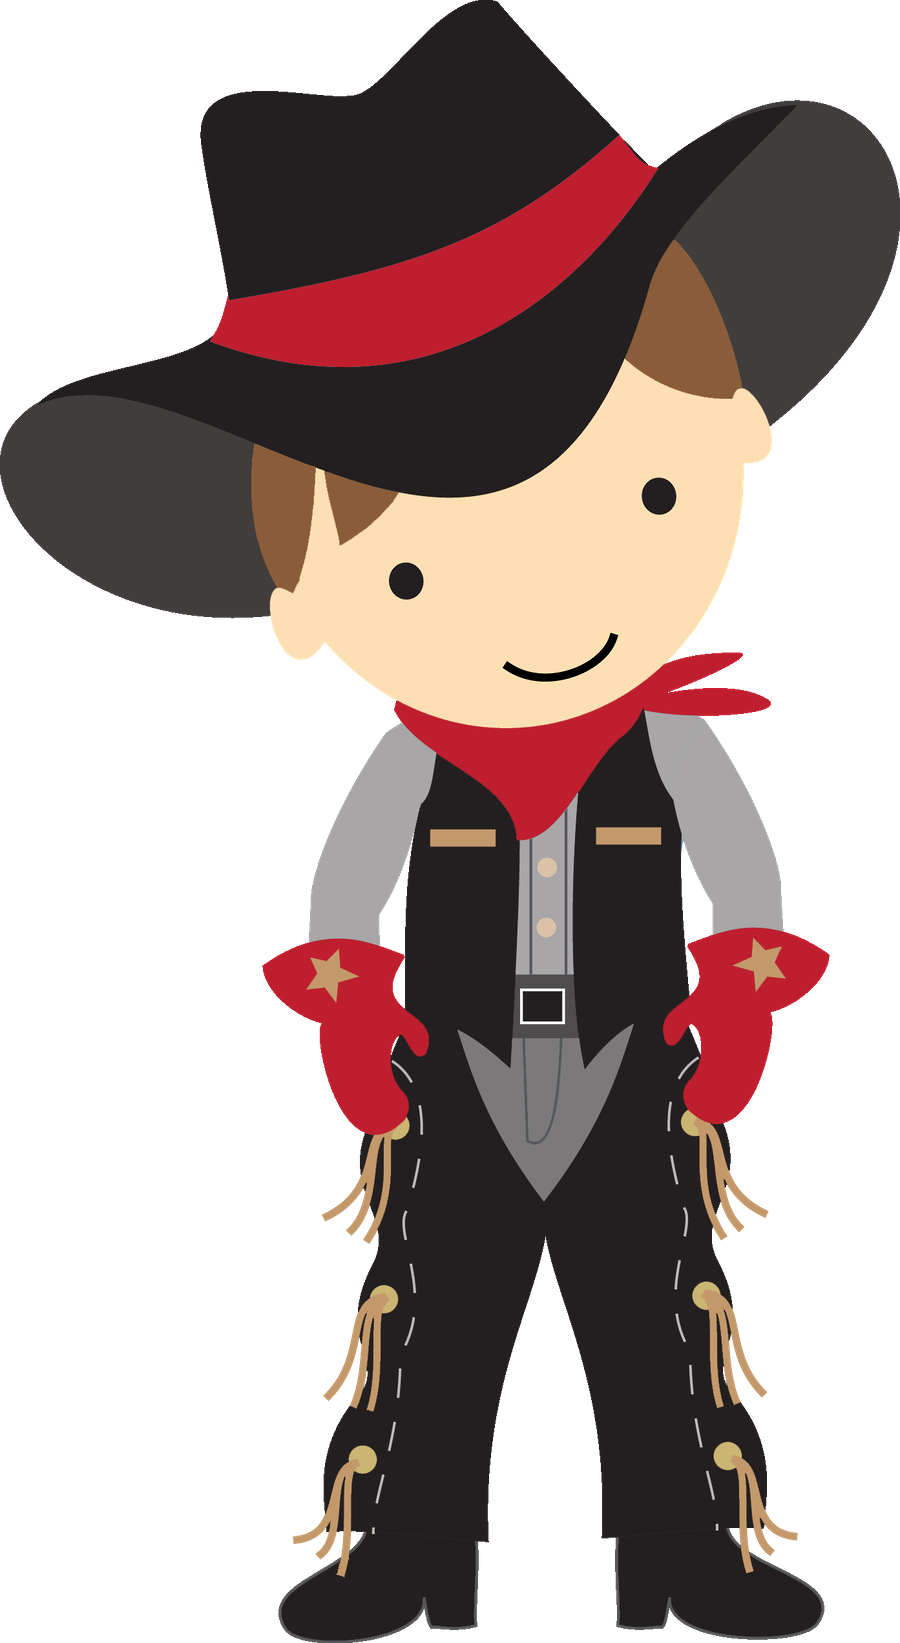 Wild west clipart little cowboy cowgirl. Clip art pinterest cowboys